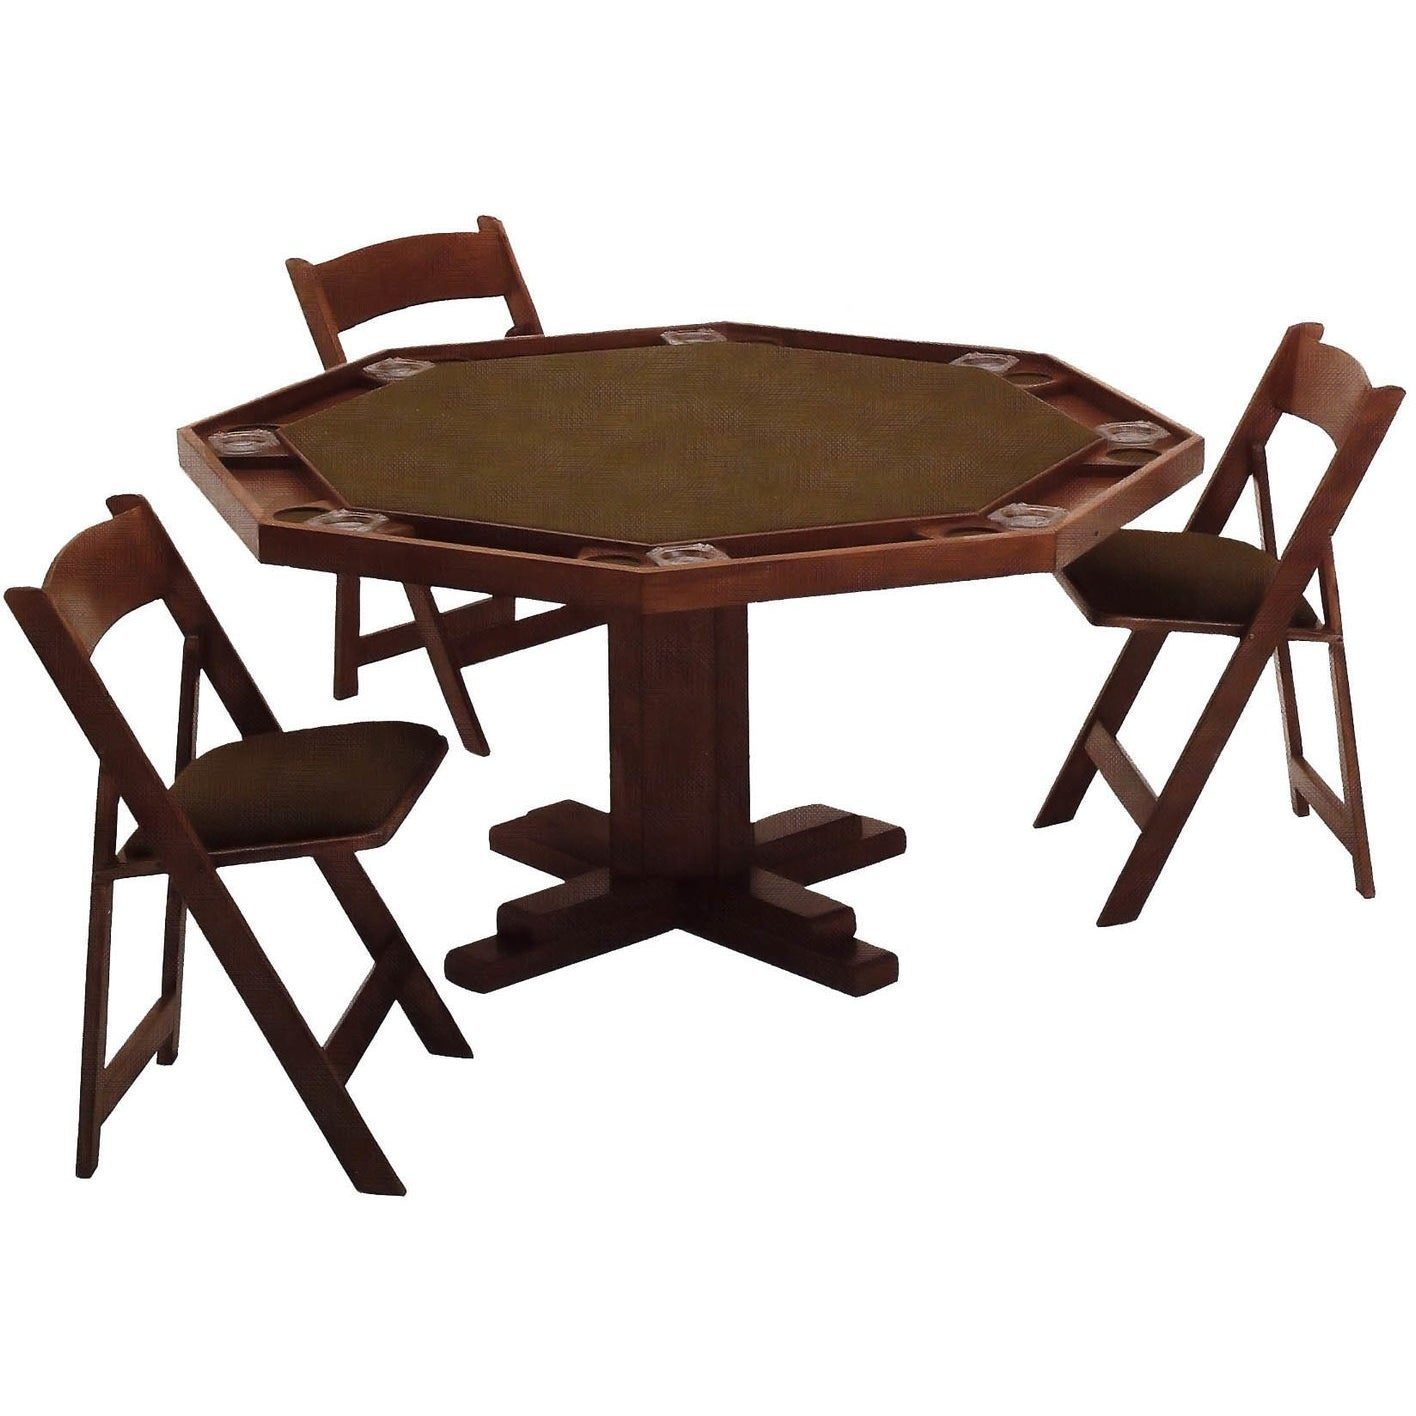 Poker table chairs -  Maple Poker Table By Kestell With Pedestal Base Americana Poker Tables